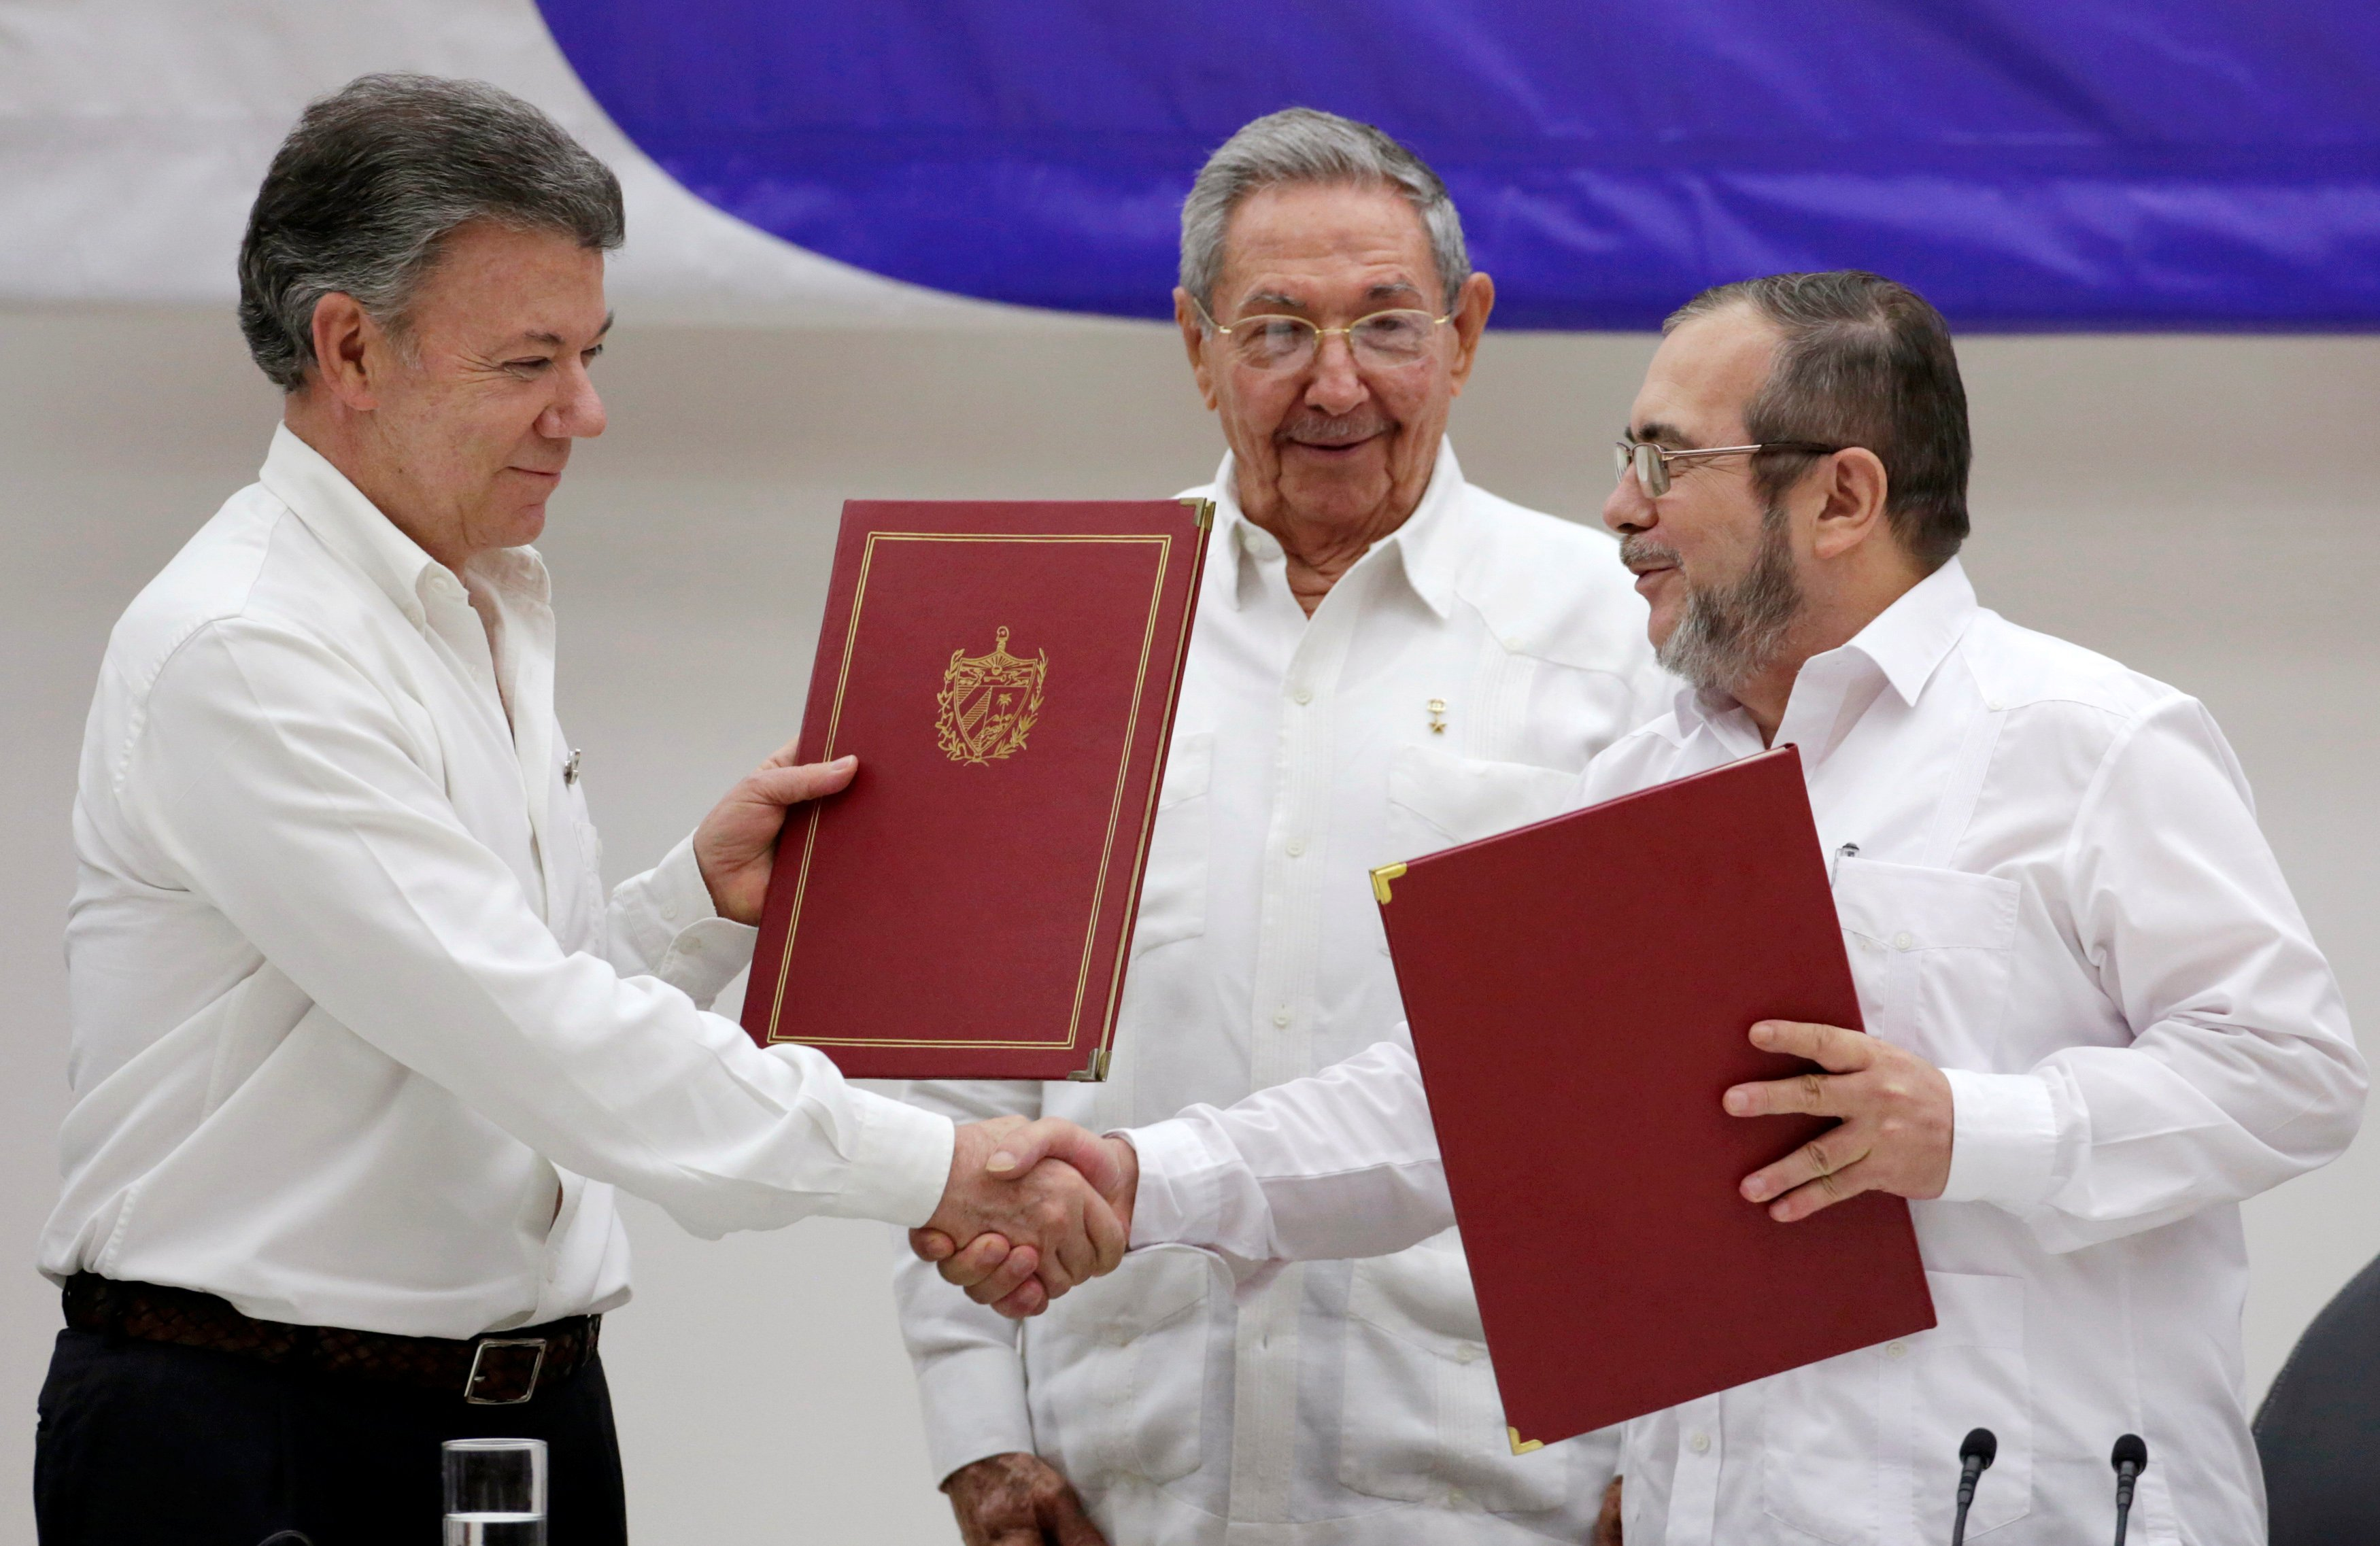 Cuba's President Raul Castro (C), Colombia's President Juan Manuel Santos (L) and FARC rebel leader Rodrigo Londono, react after the signing of a ceasefire deal in Havana, on June 23, 2016.